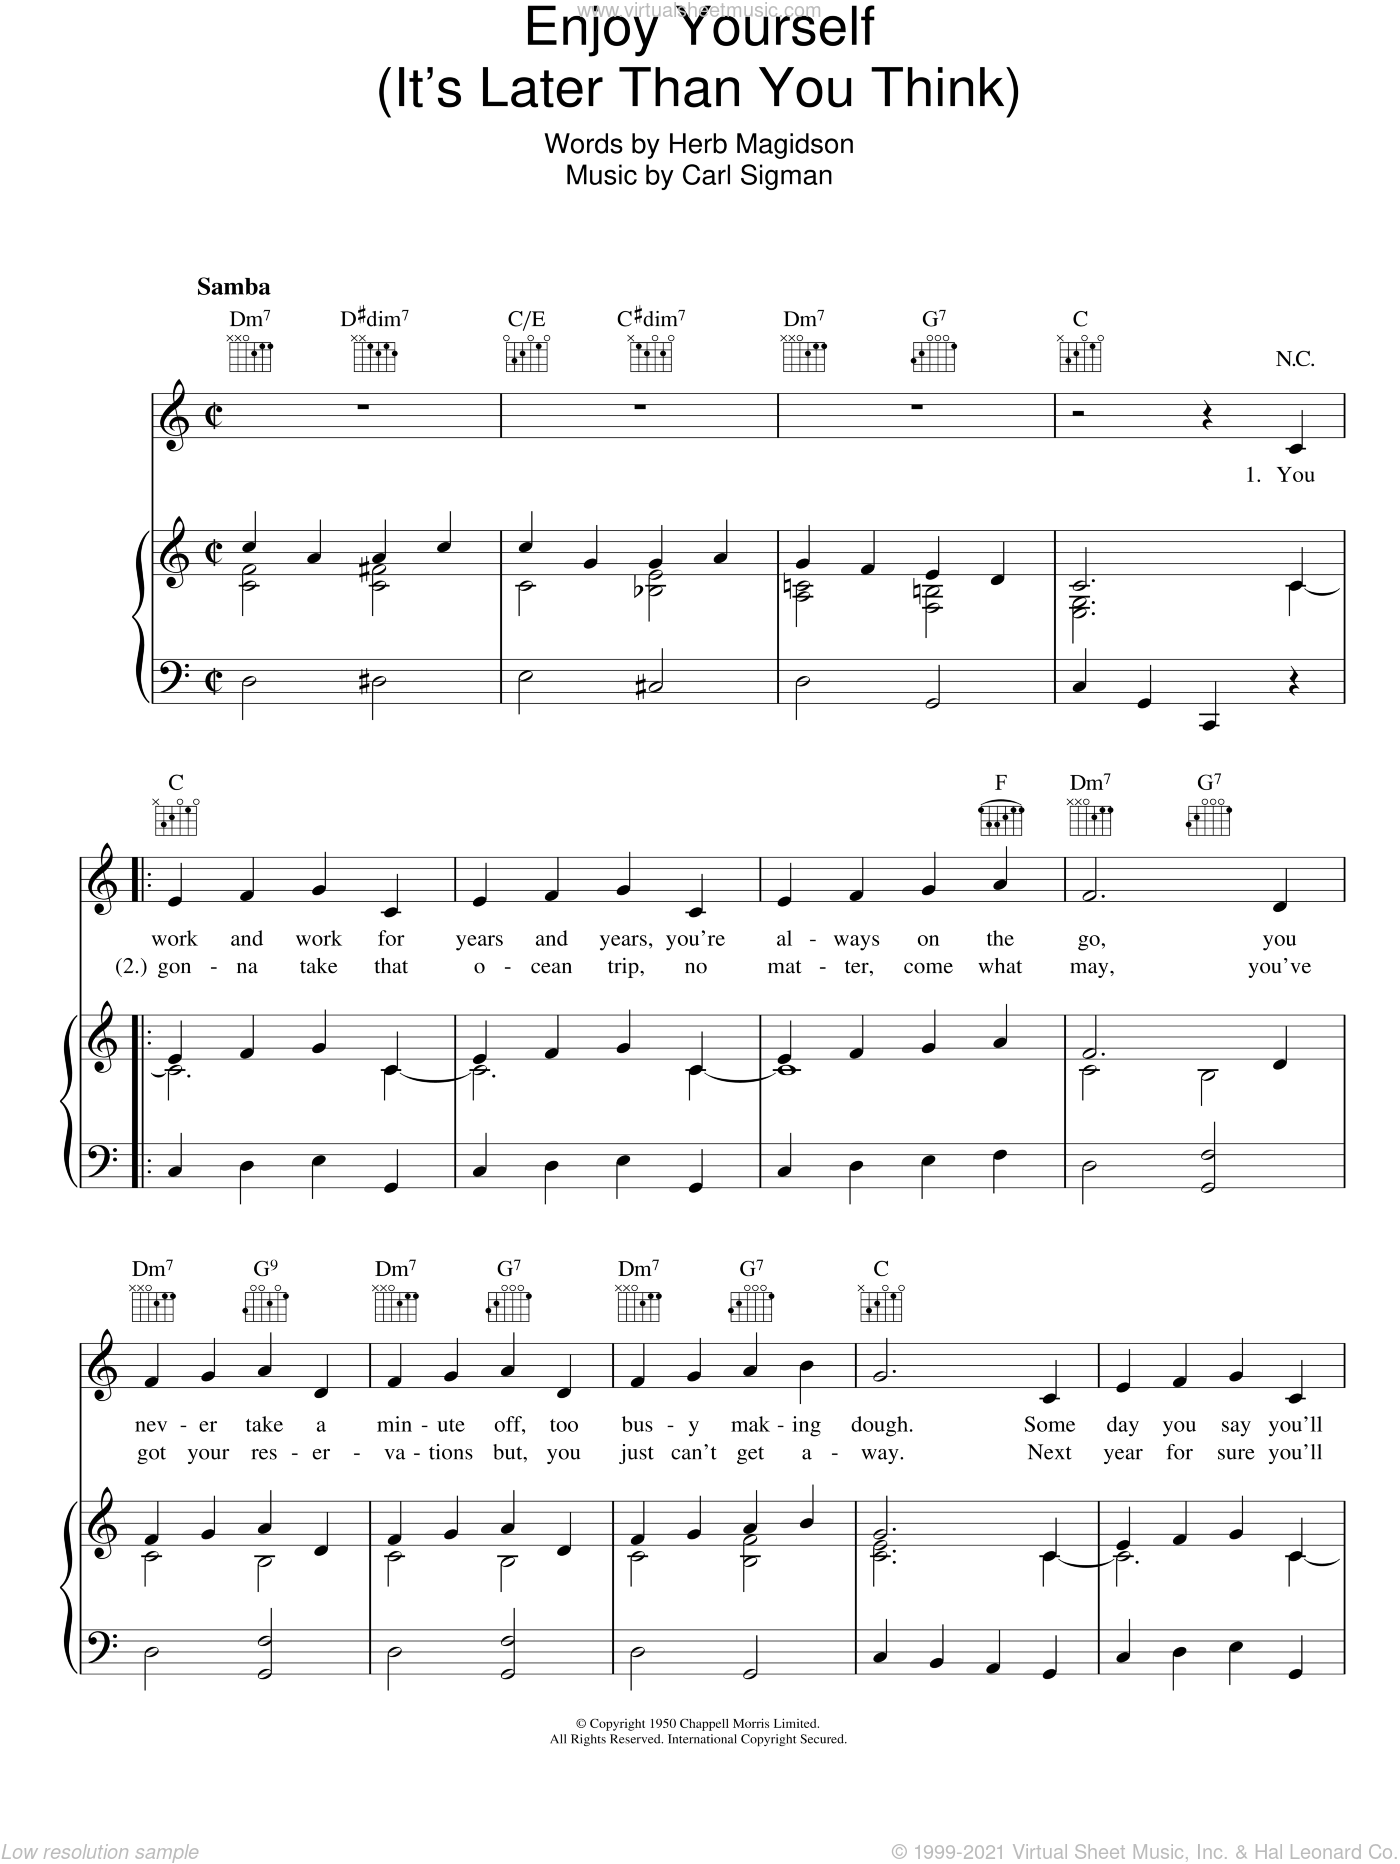 Enjoy Yourself (It's Later Than You Think) sheet music for voice, piano or guitar by Herb Magidson